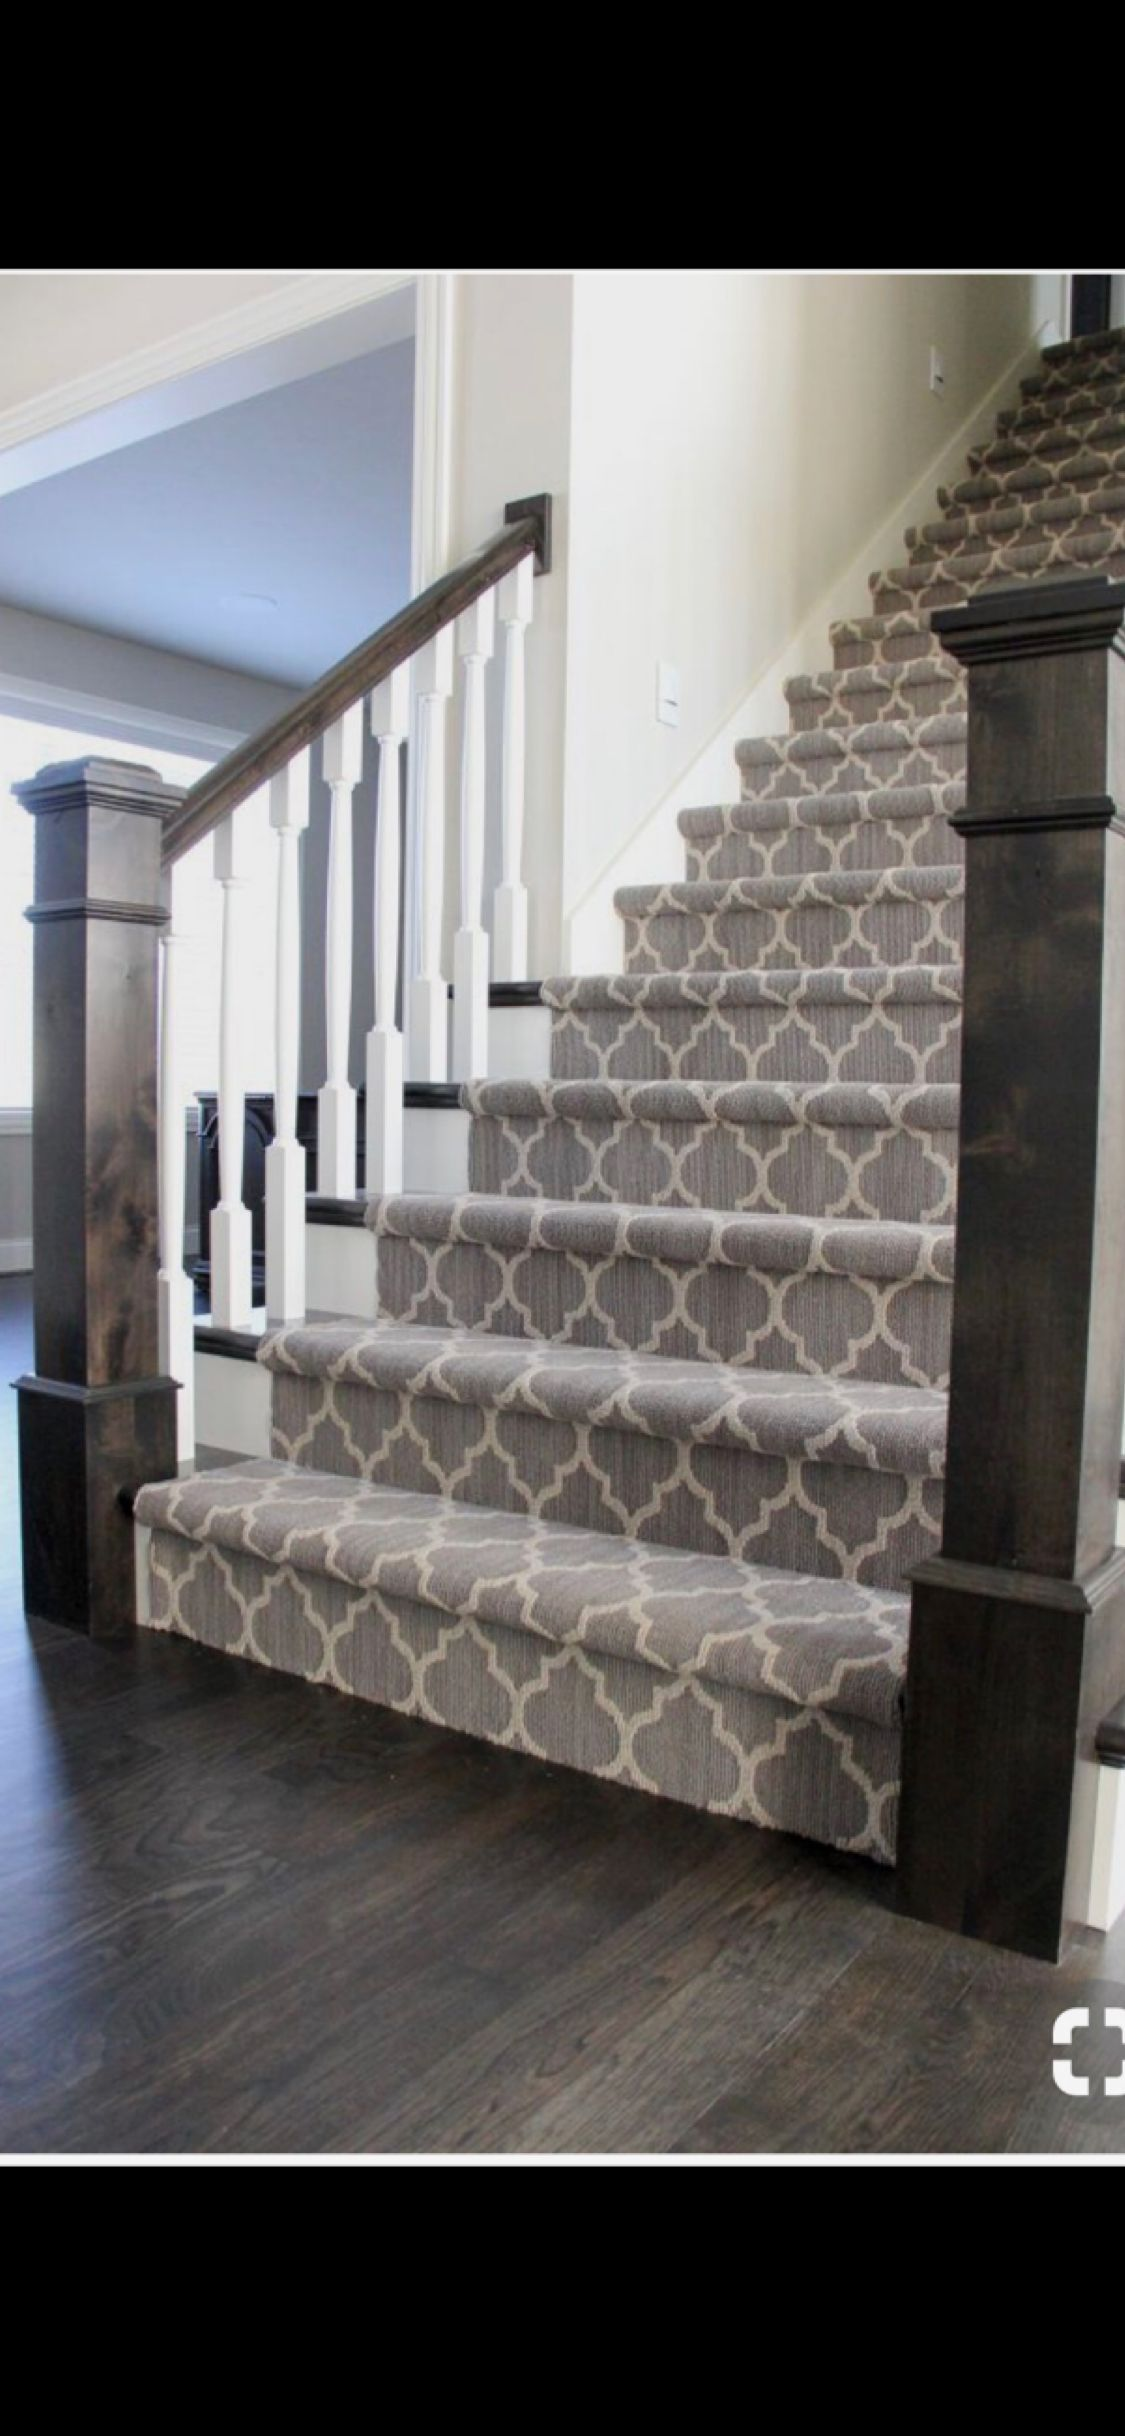 21 Best Staircase Decorating Ideas For Your Home » Creative Hd | Modern Stair Railing Home Depot | Iron Stair | Deck Railing | Railing Kits | Cable Railing Systems | Railing Designs